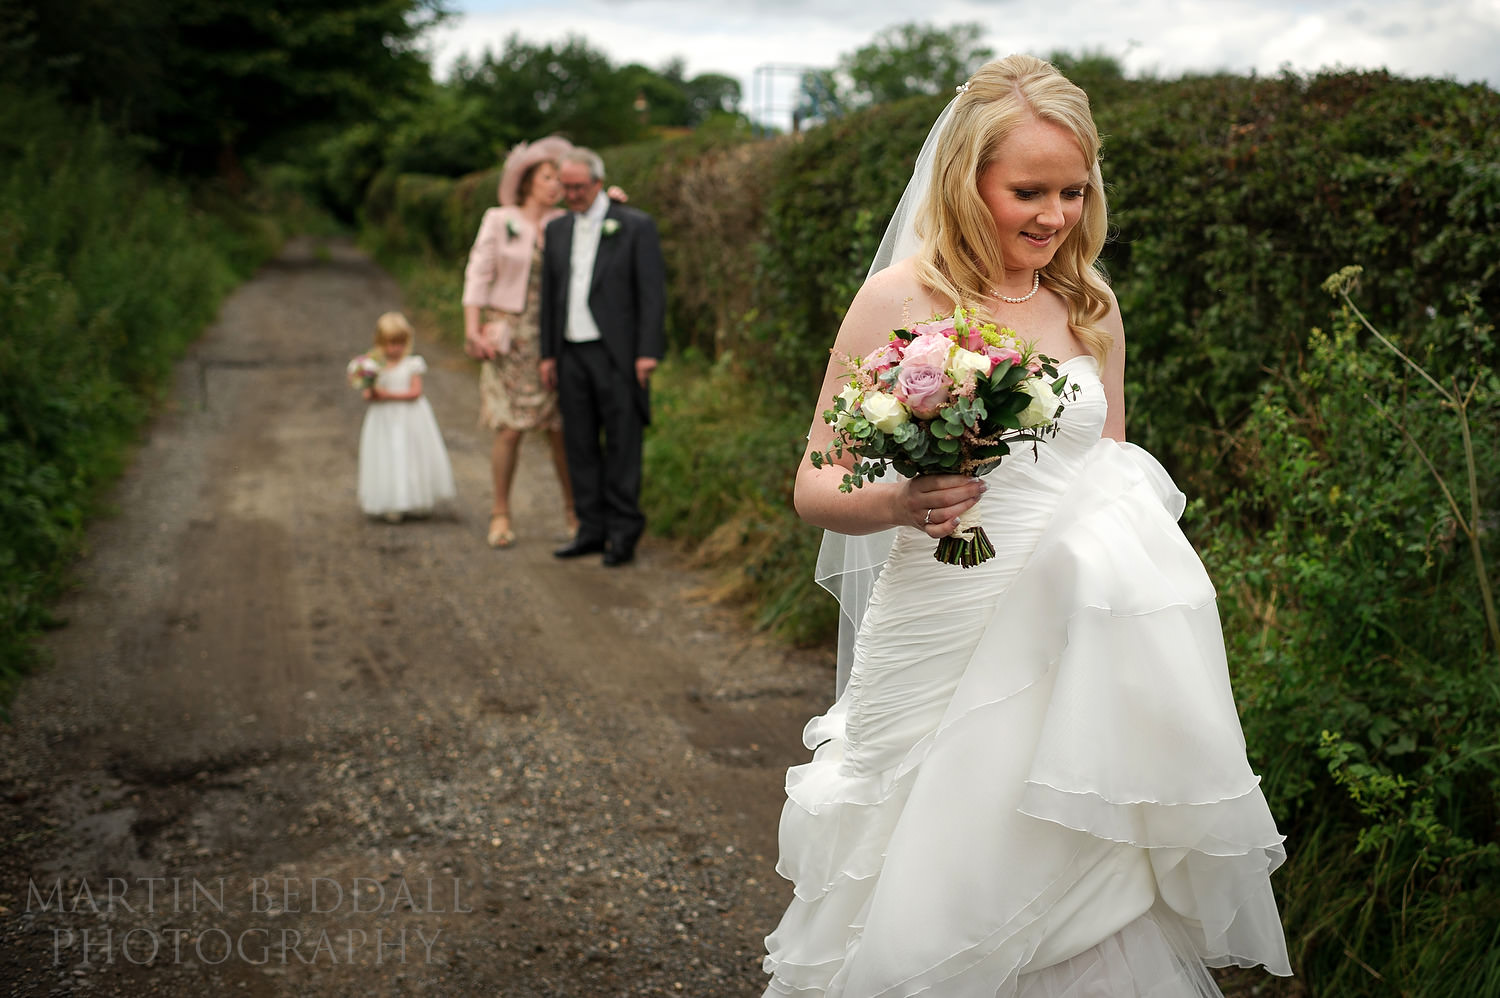 Bride heading to the ceremony at Gate Street Barn wedding